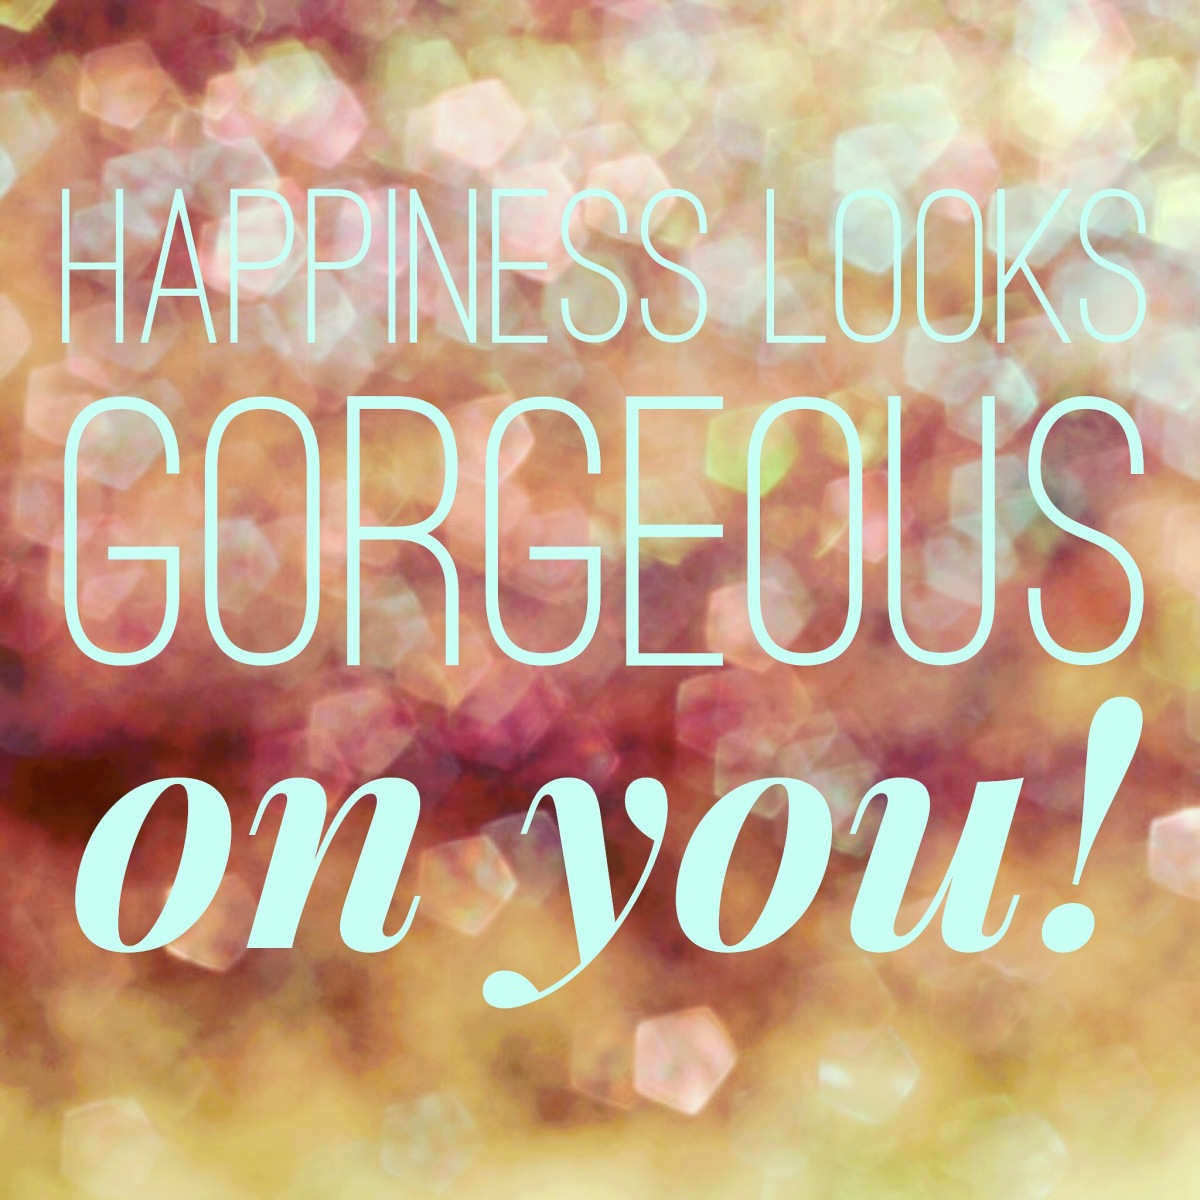 Want to know the secret togorgeous?